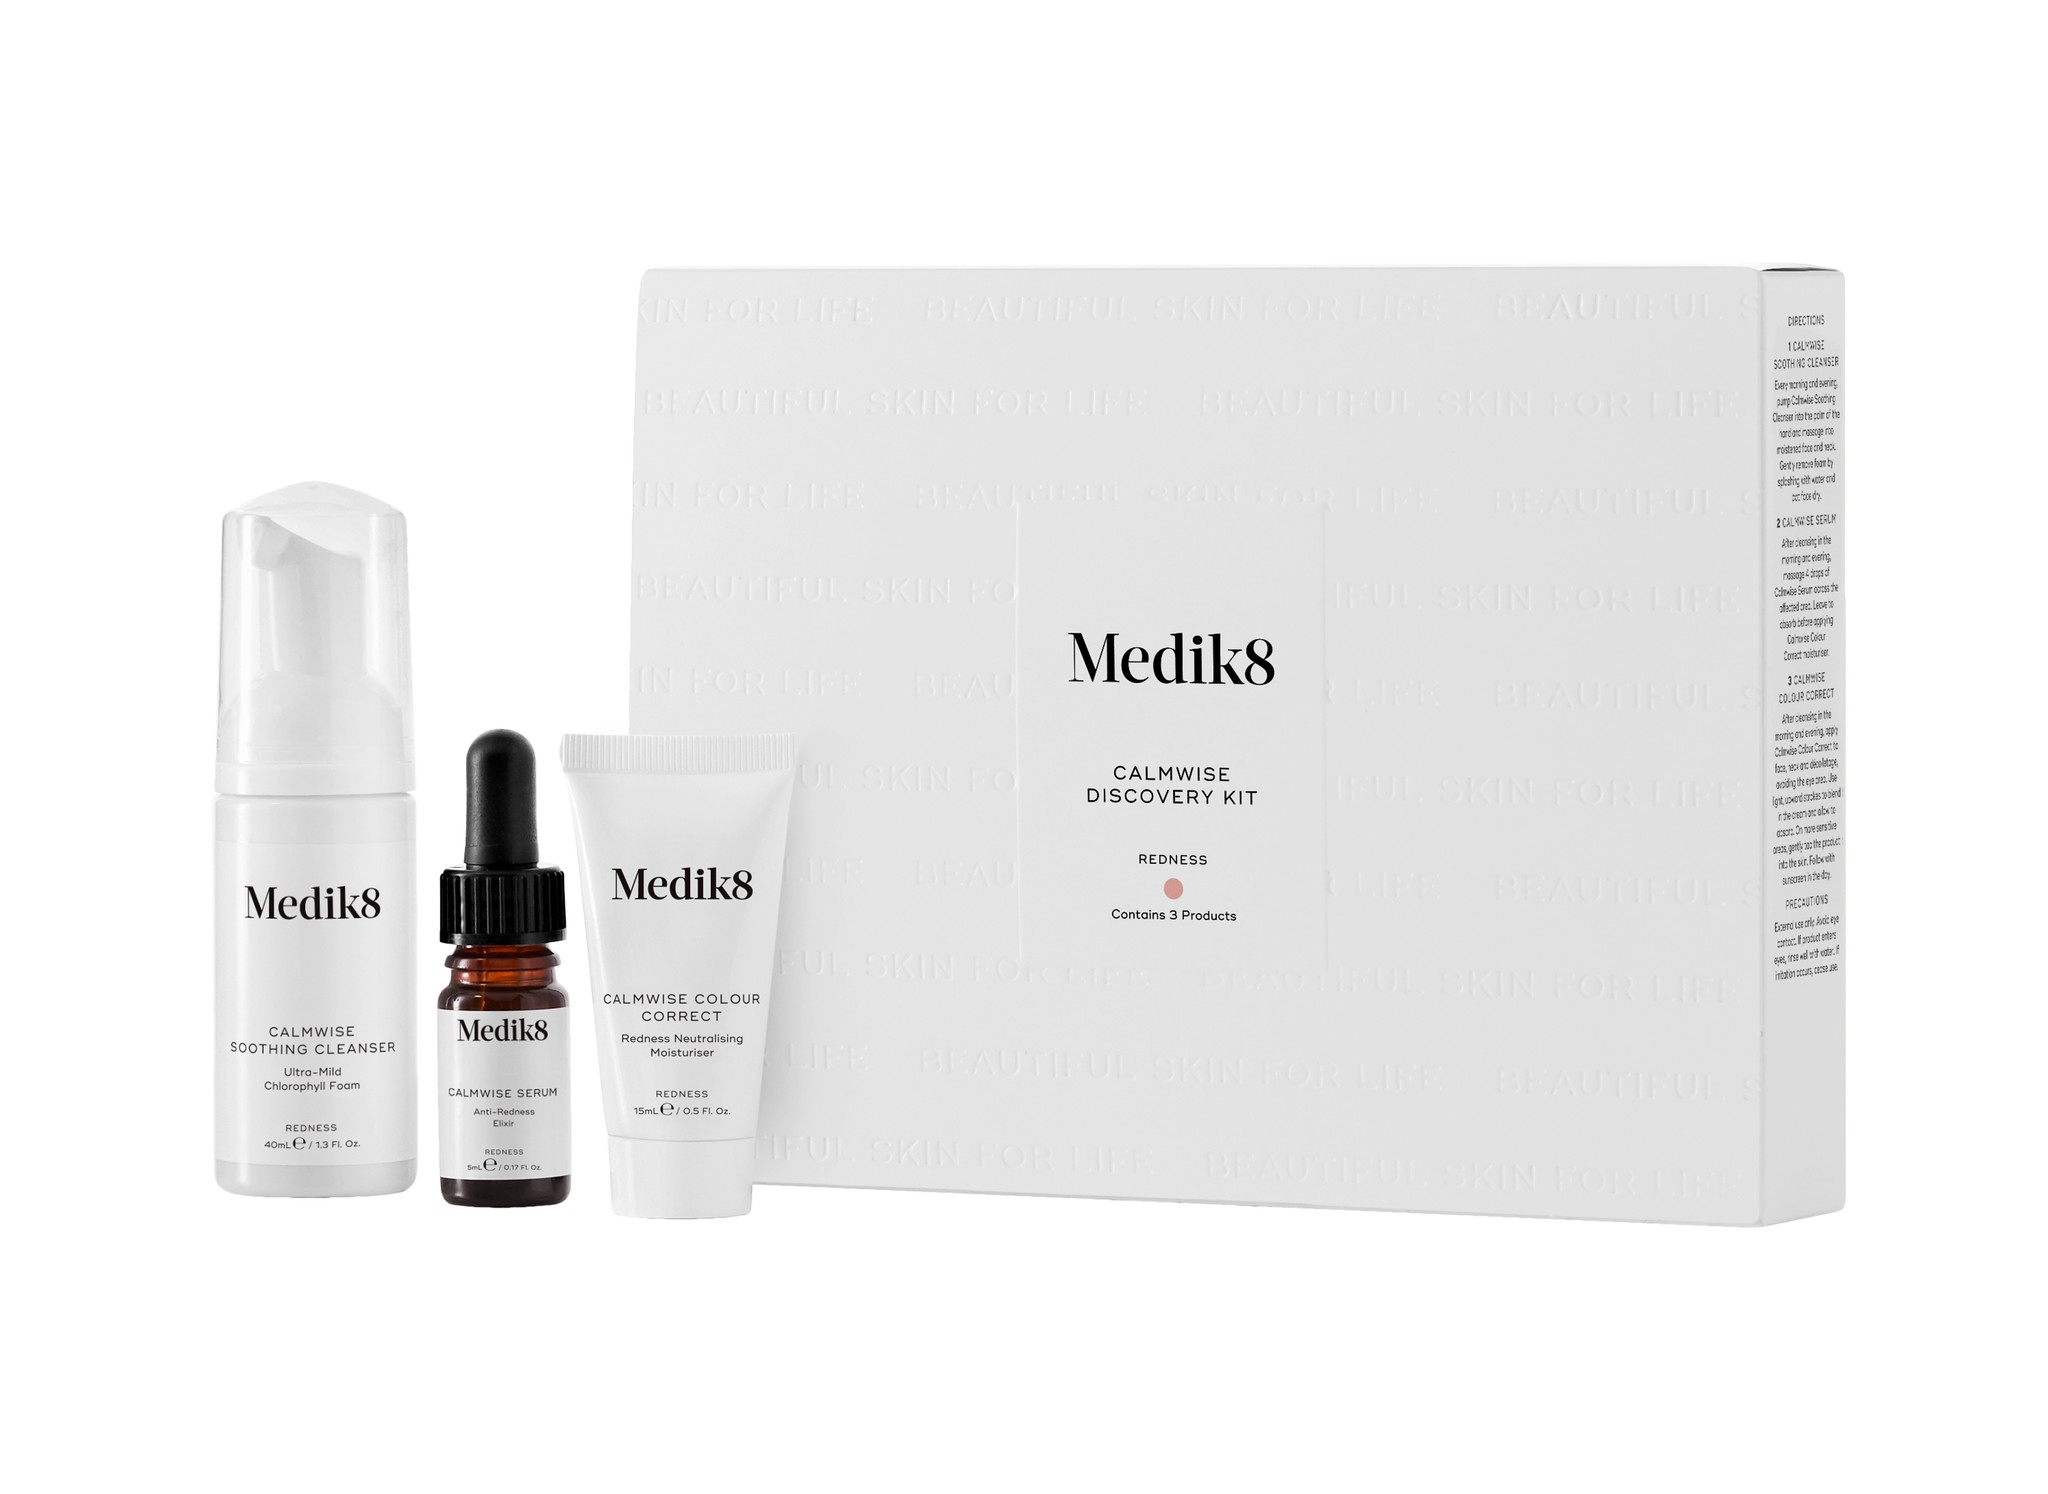 Medik8 Contains 3 products | Calmwise Soothing Cleanser, Calmwise Serum, Calmwise Colour Correct